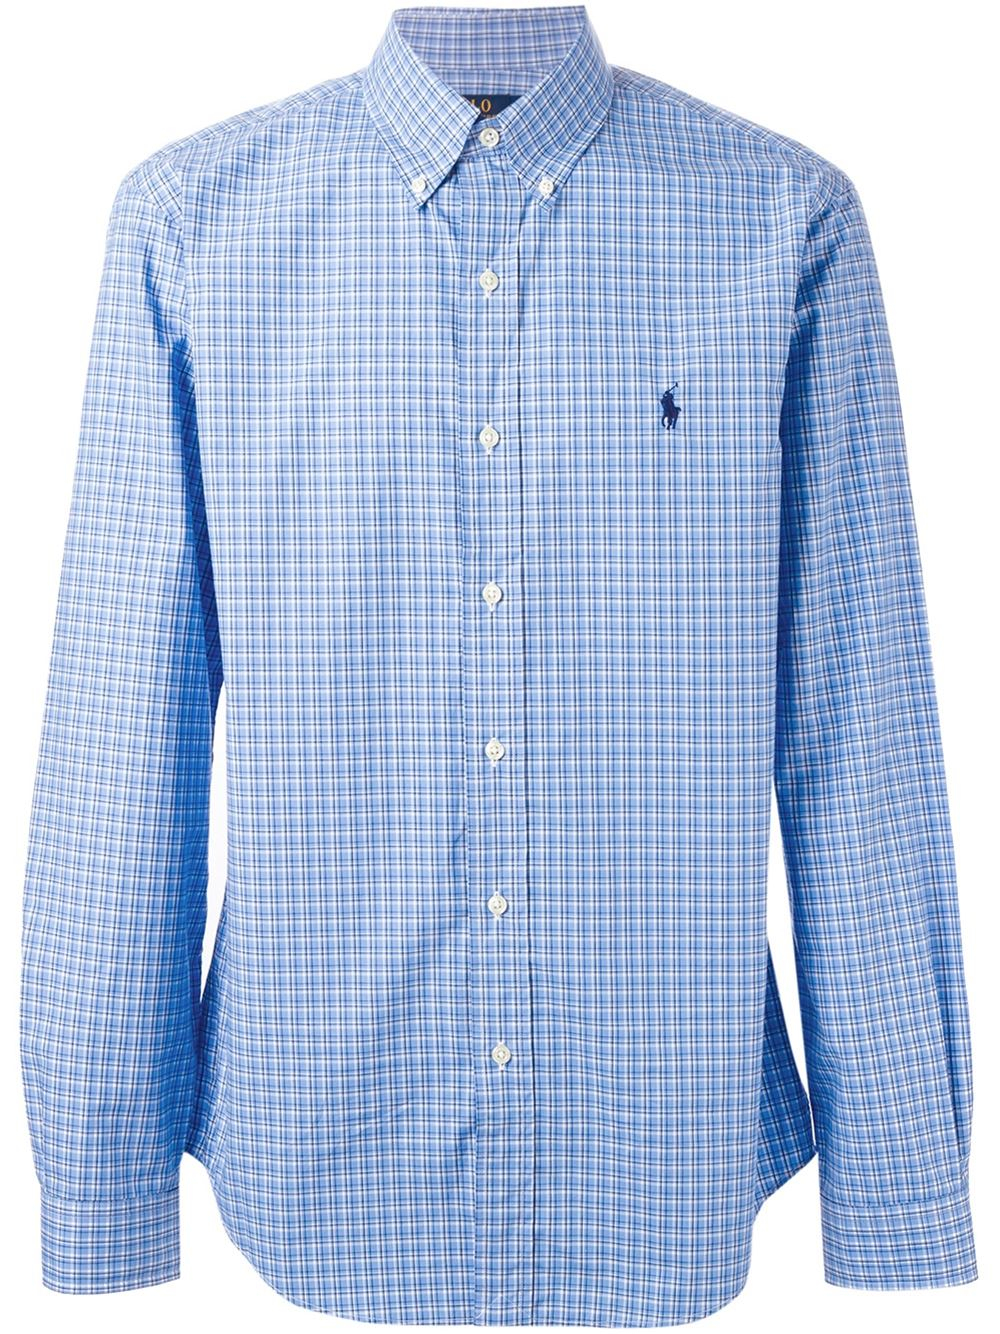 Polo ralph lauren gingham print shirt in blue for men lyst for Mens blue gingham shirt